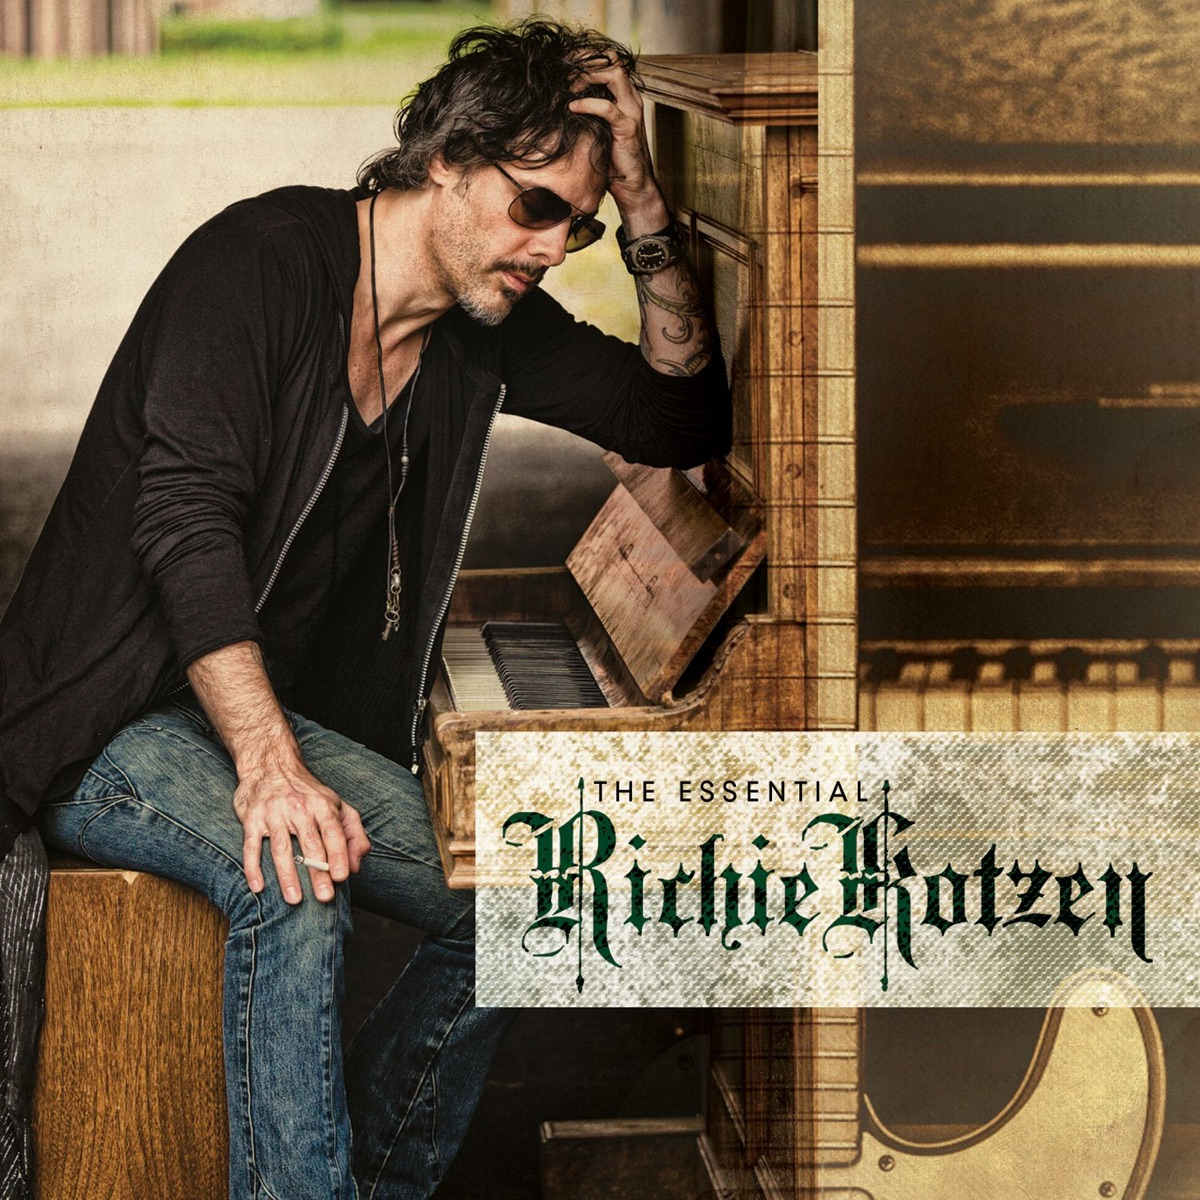 The Essential Richie Kotzen Richie Kotzen CD cover